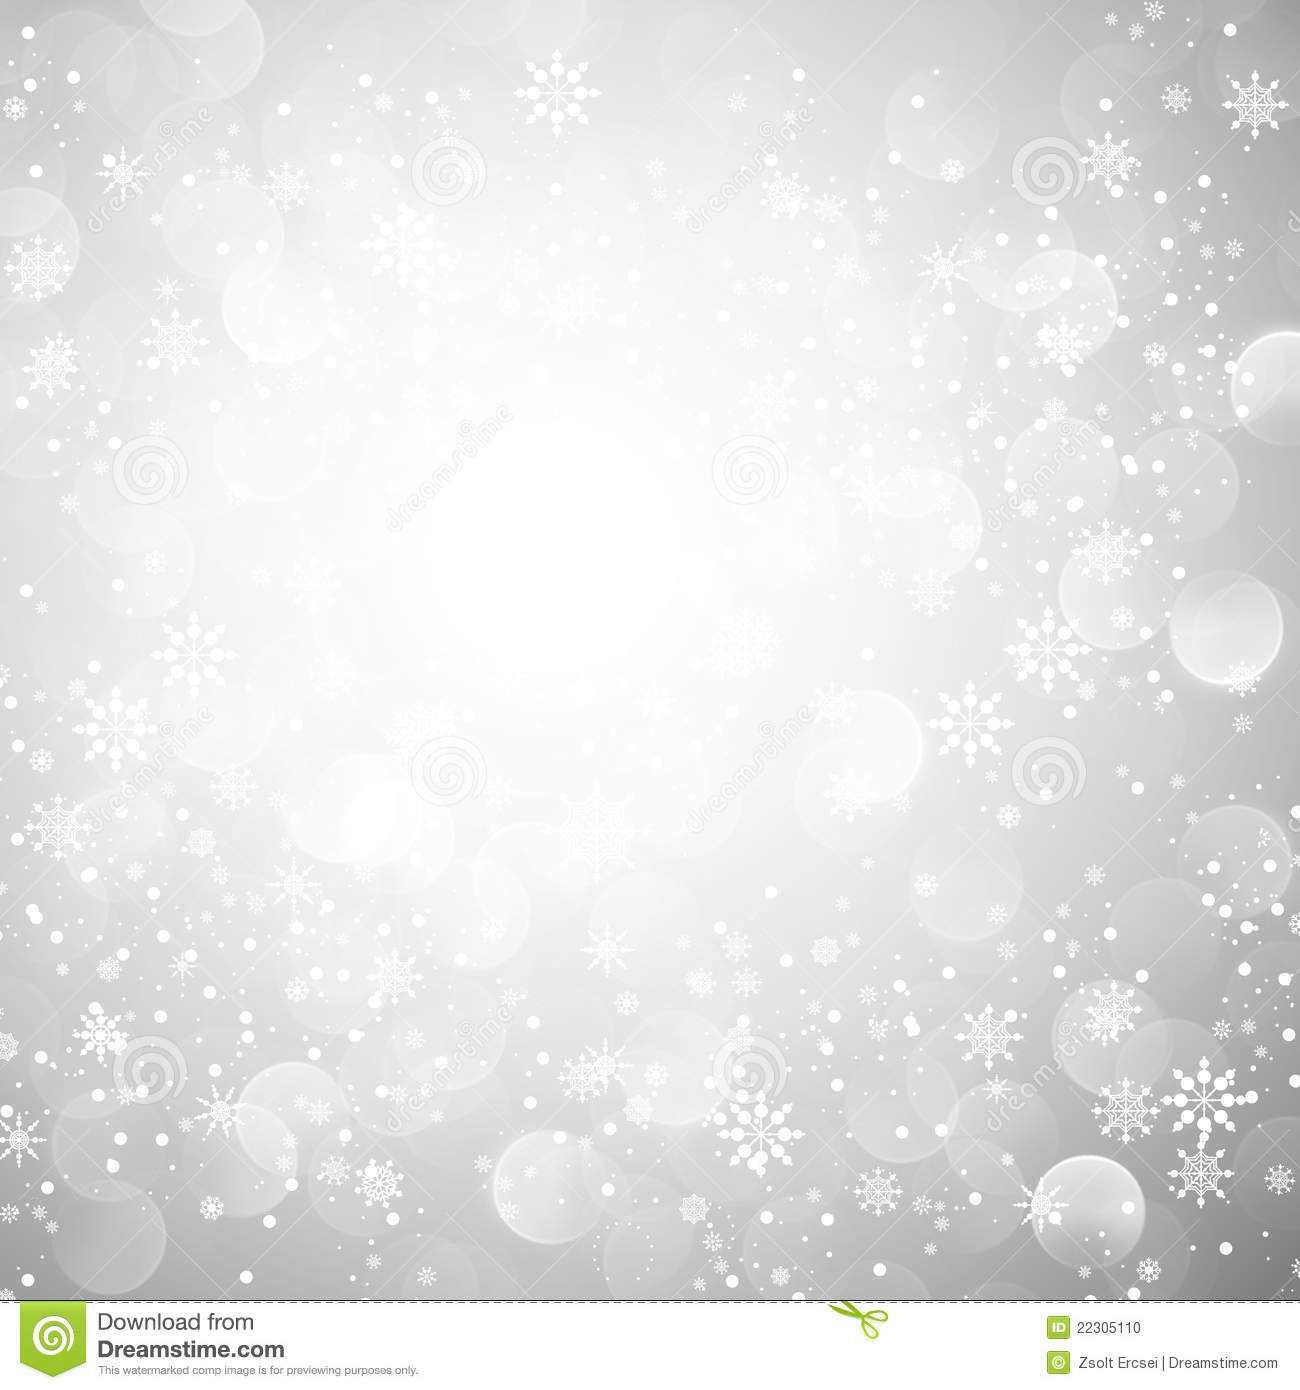 Silver snowflake christmas background stock vector illustration of focus holiday 22305110 - Wallpaper 600x600 ...